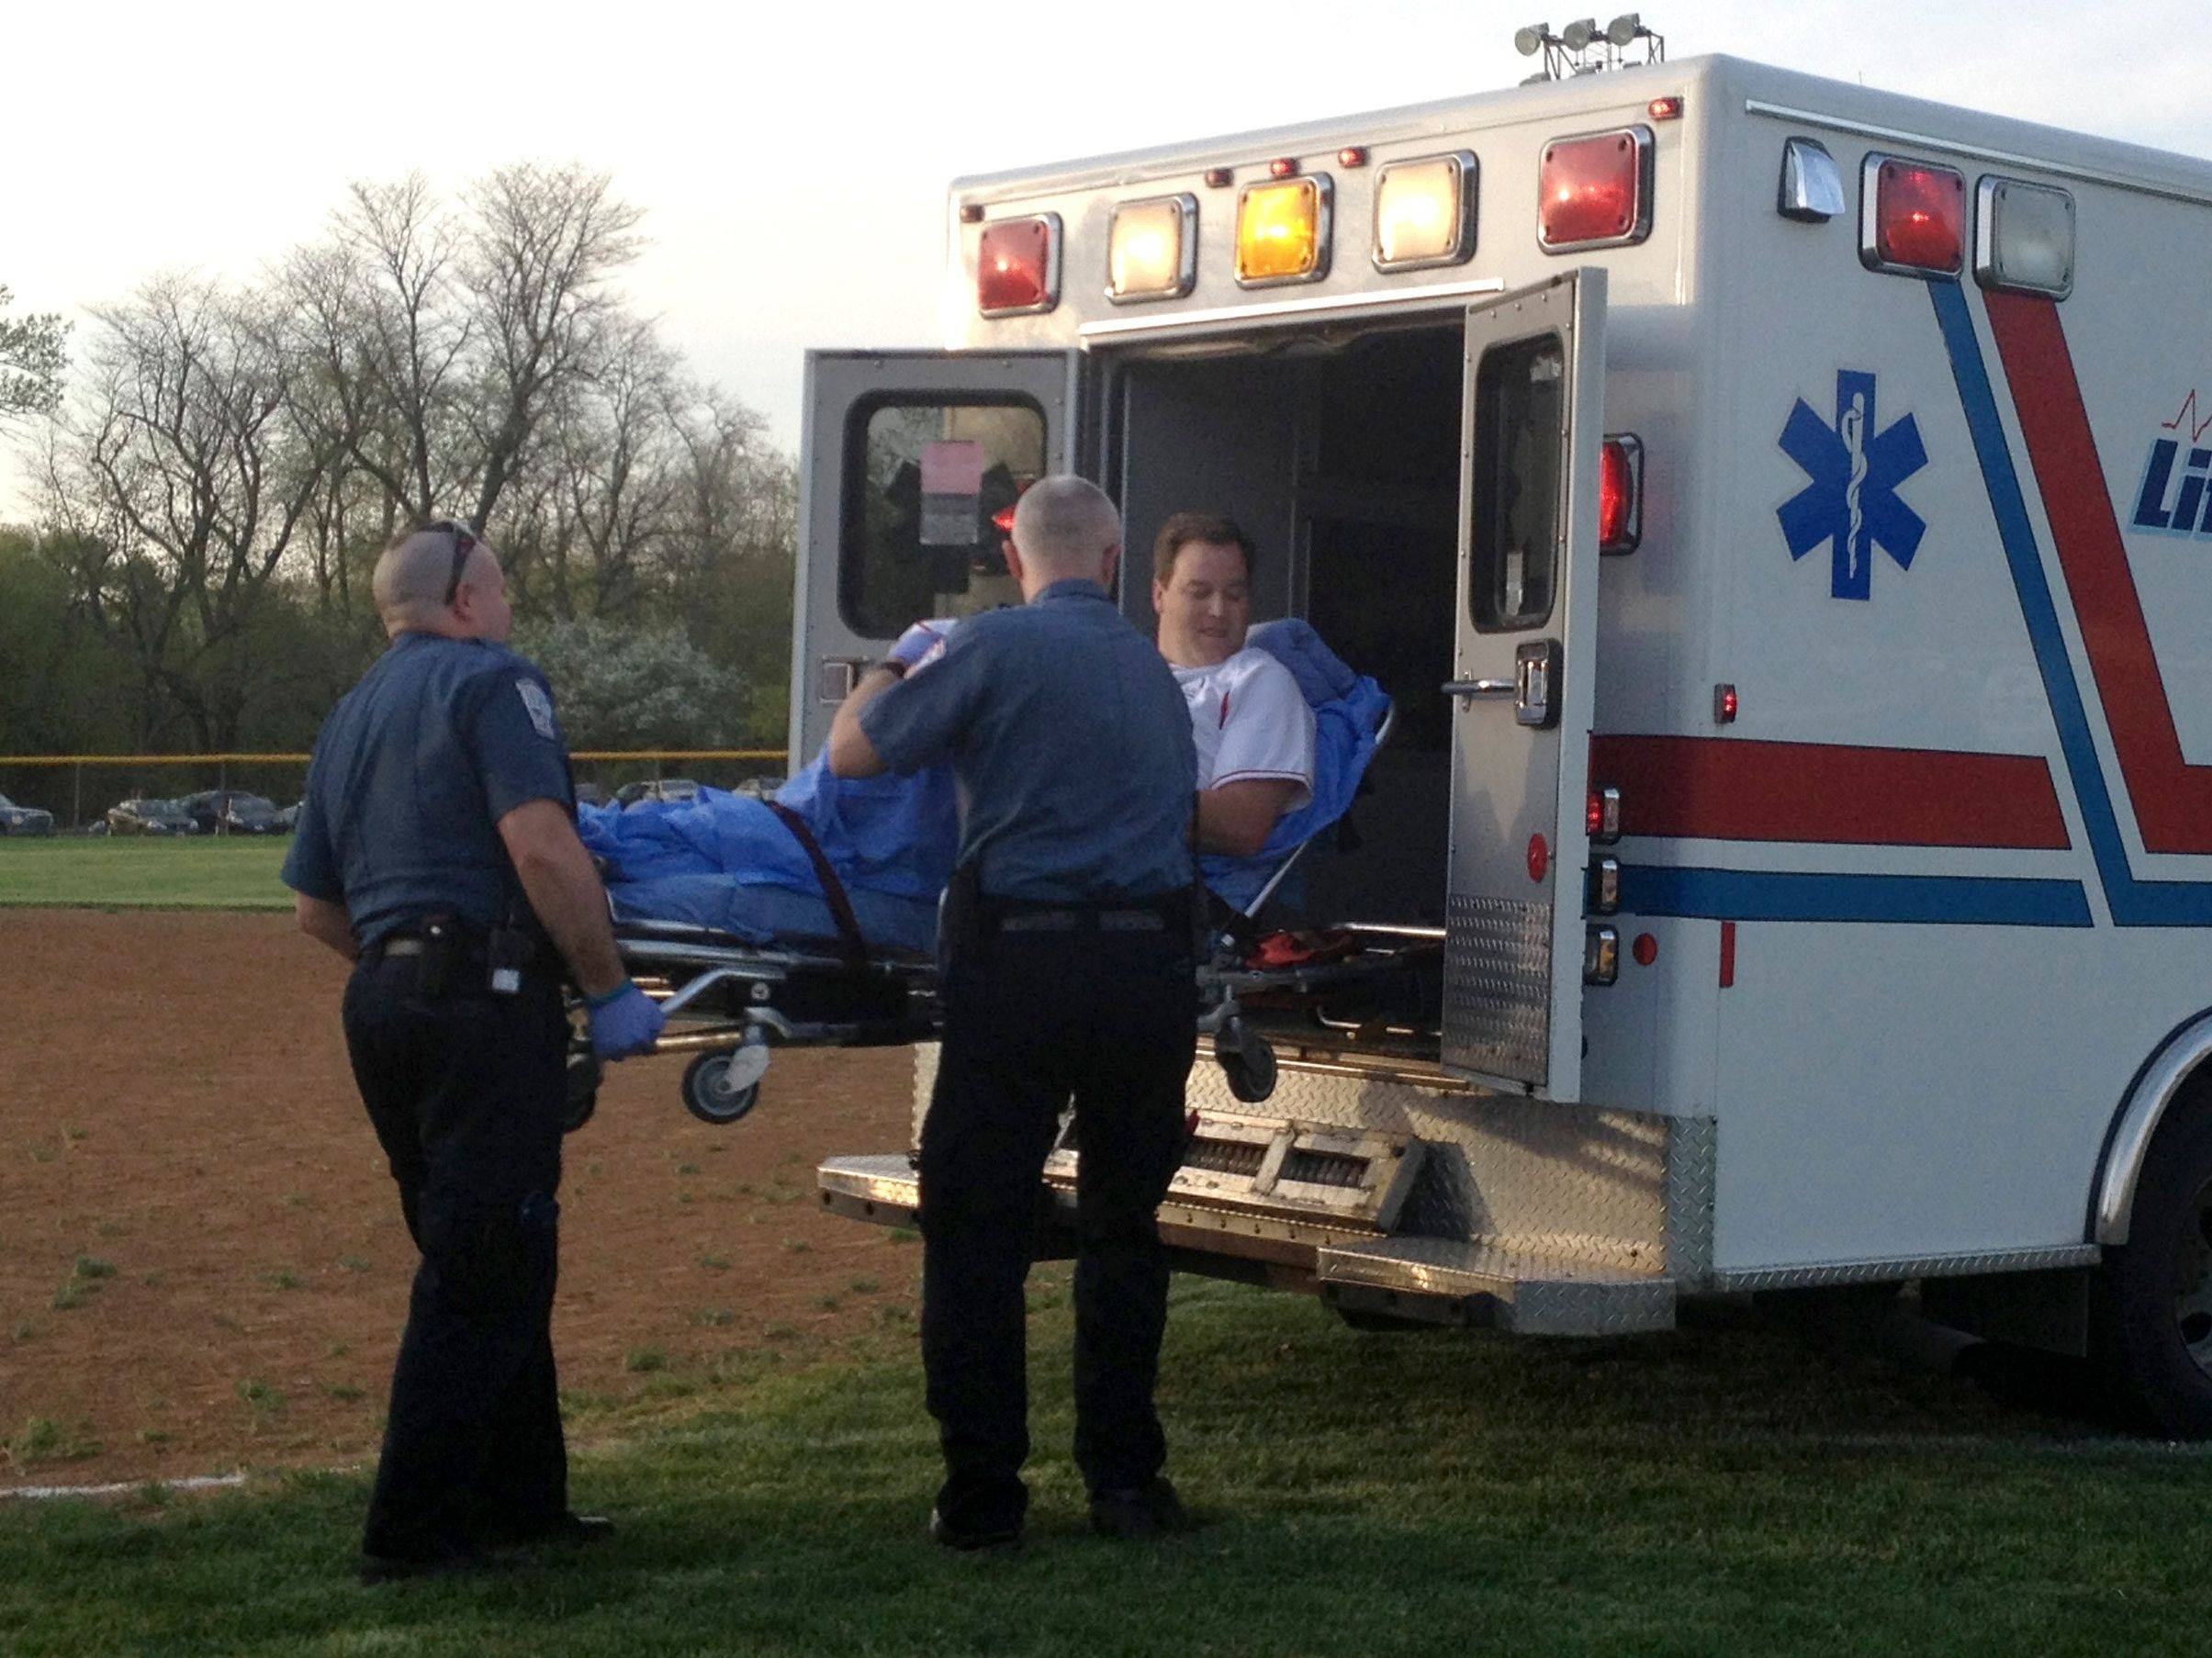 State Sen. Matt Murphy, a Palatine Republican, was loaded into an ambulance Wednesday after being injured in the annual softball game between the Illinois House and Senate in Springfield. .